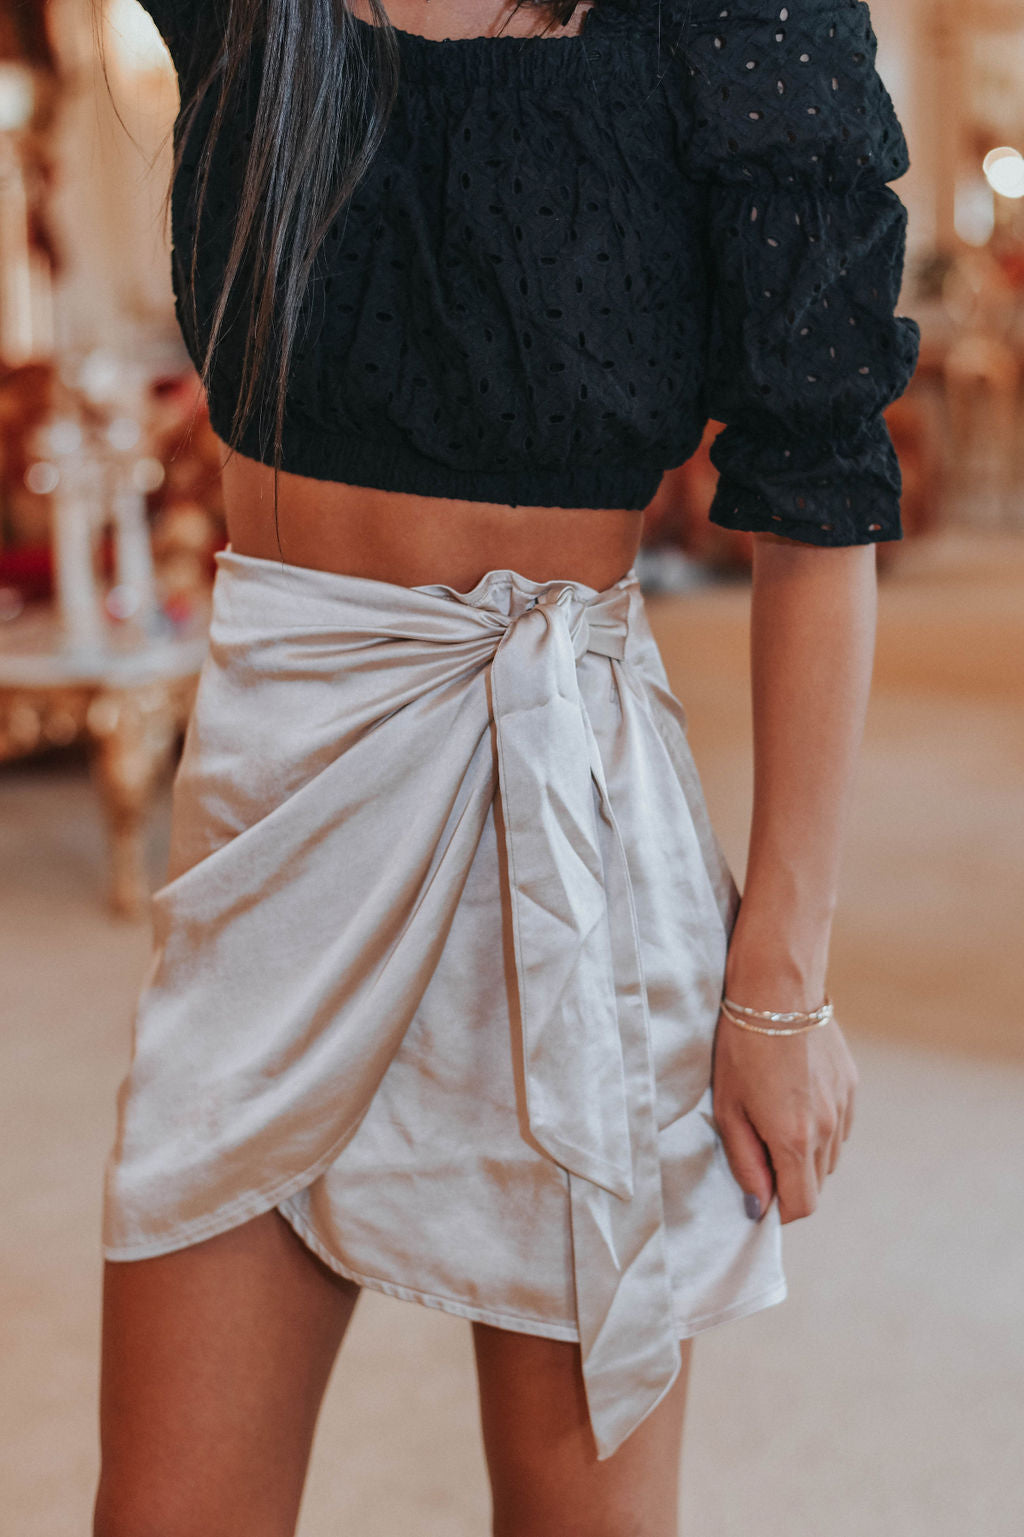 Sleek and Chic Skirt, Champagne